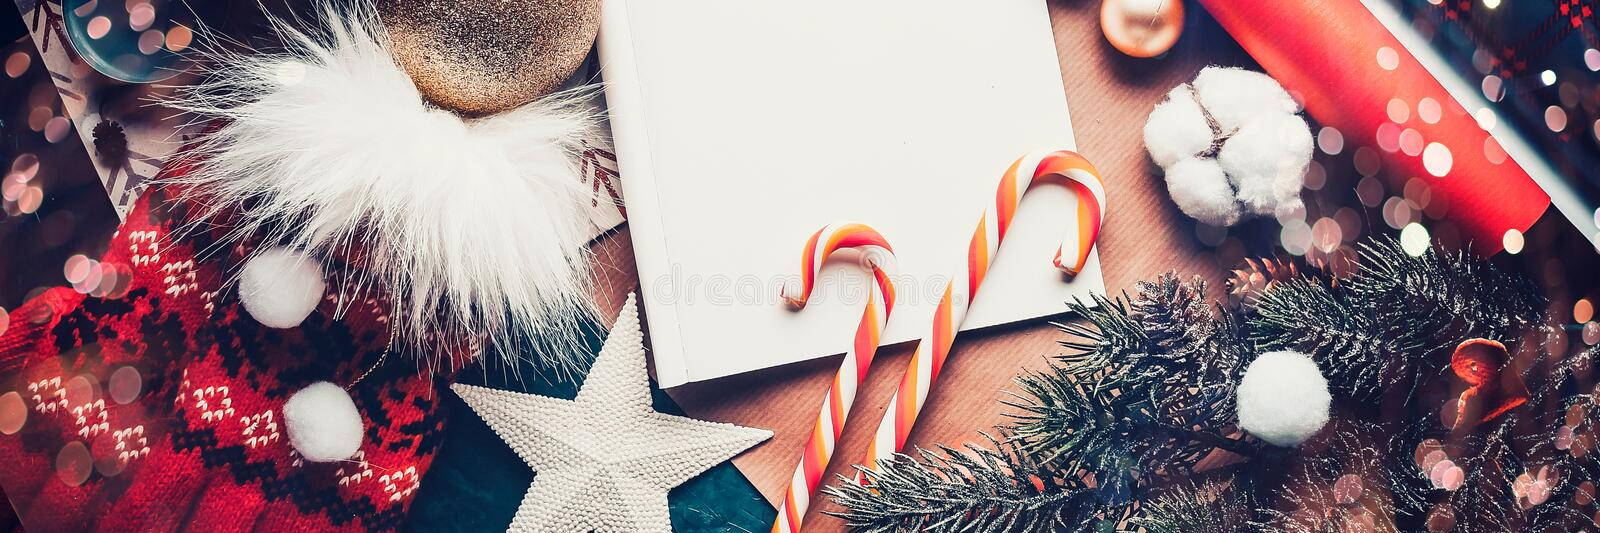 A letter to Santa Claus, Christmas gifts. Christmas fir tree, decorations on a dark background. Banner stock photo